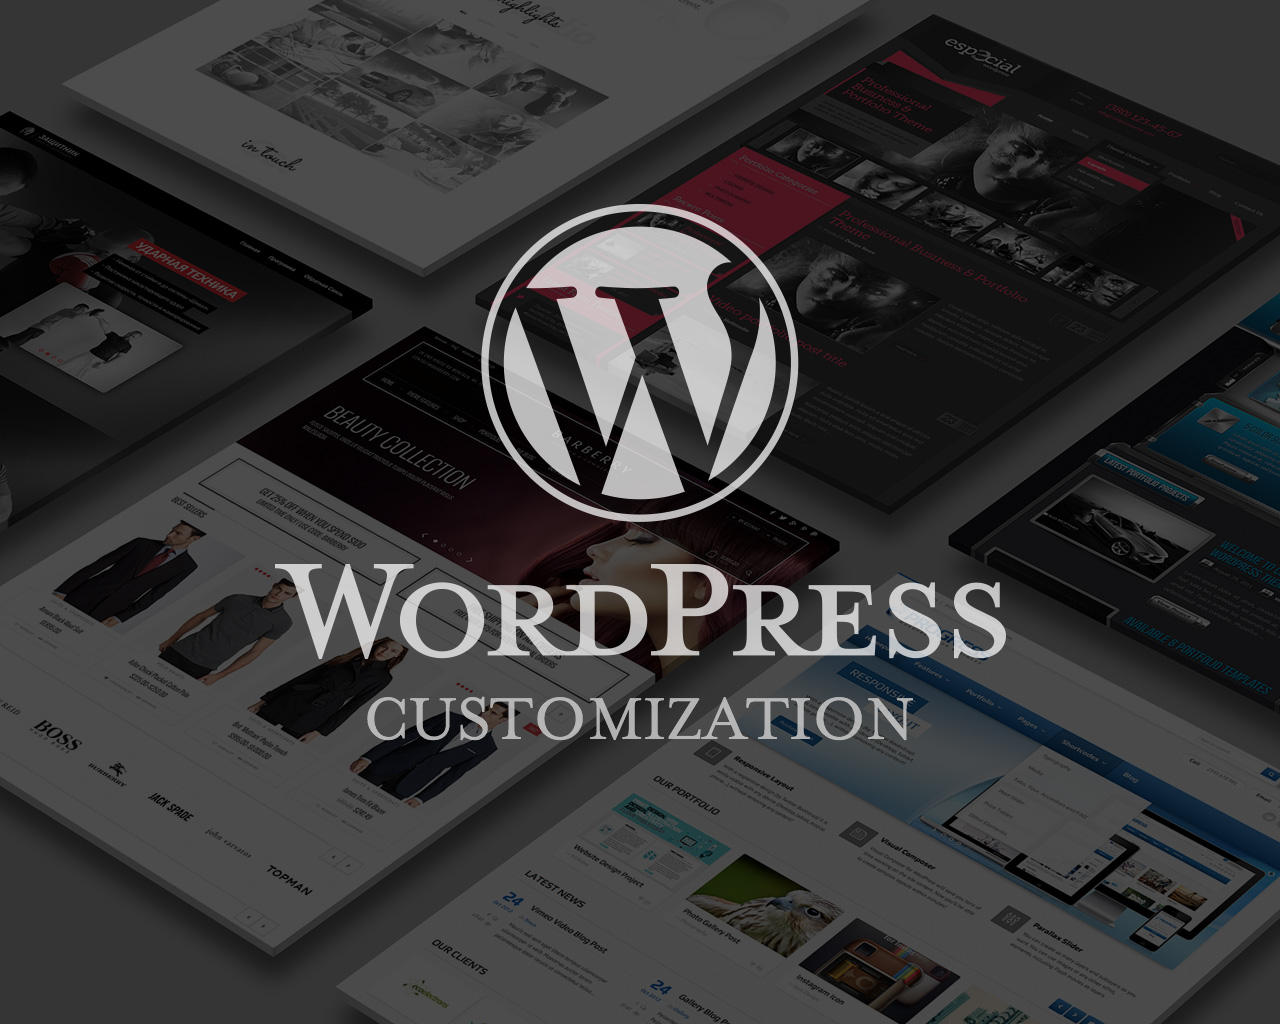 Premium WordPress Theme Customization by temash - 73200